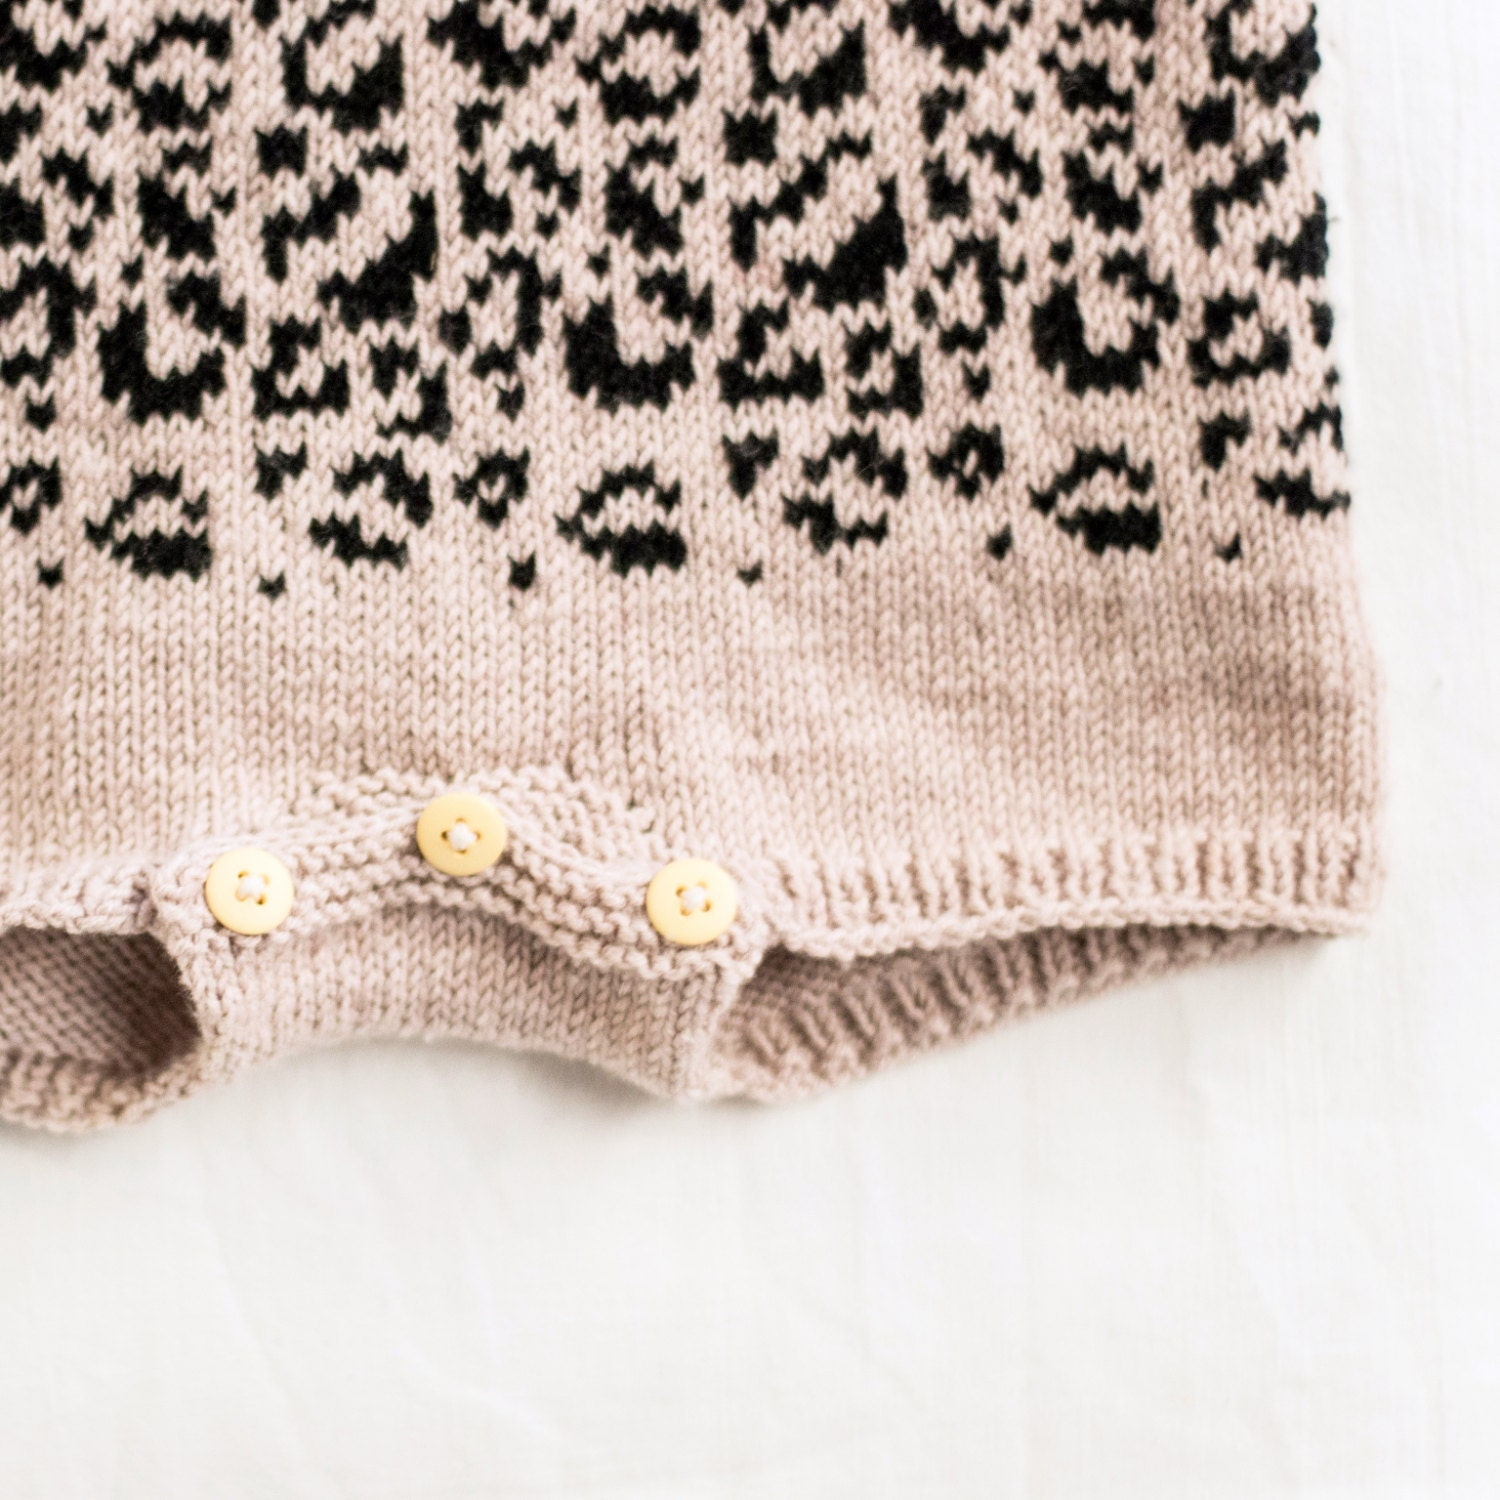 Leopard Knitting Pattern : The Mini Leopard - Knitting pattern - EN